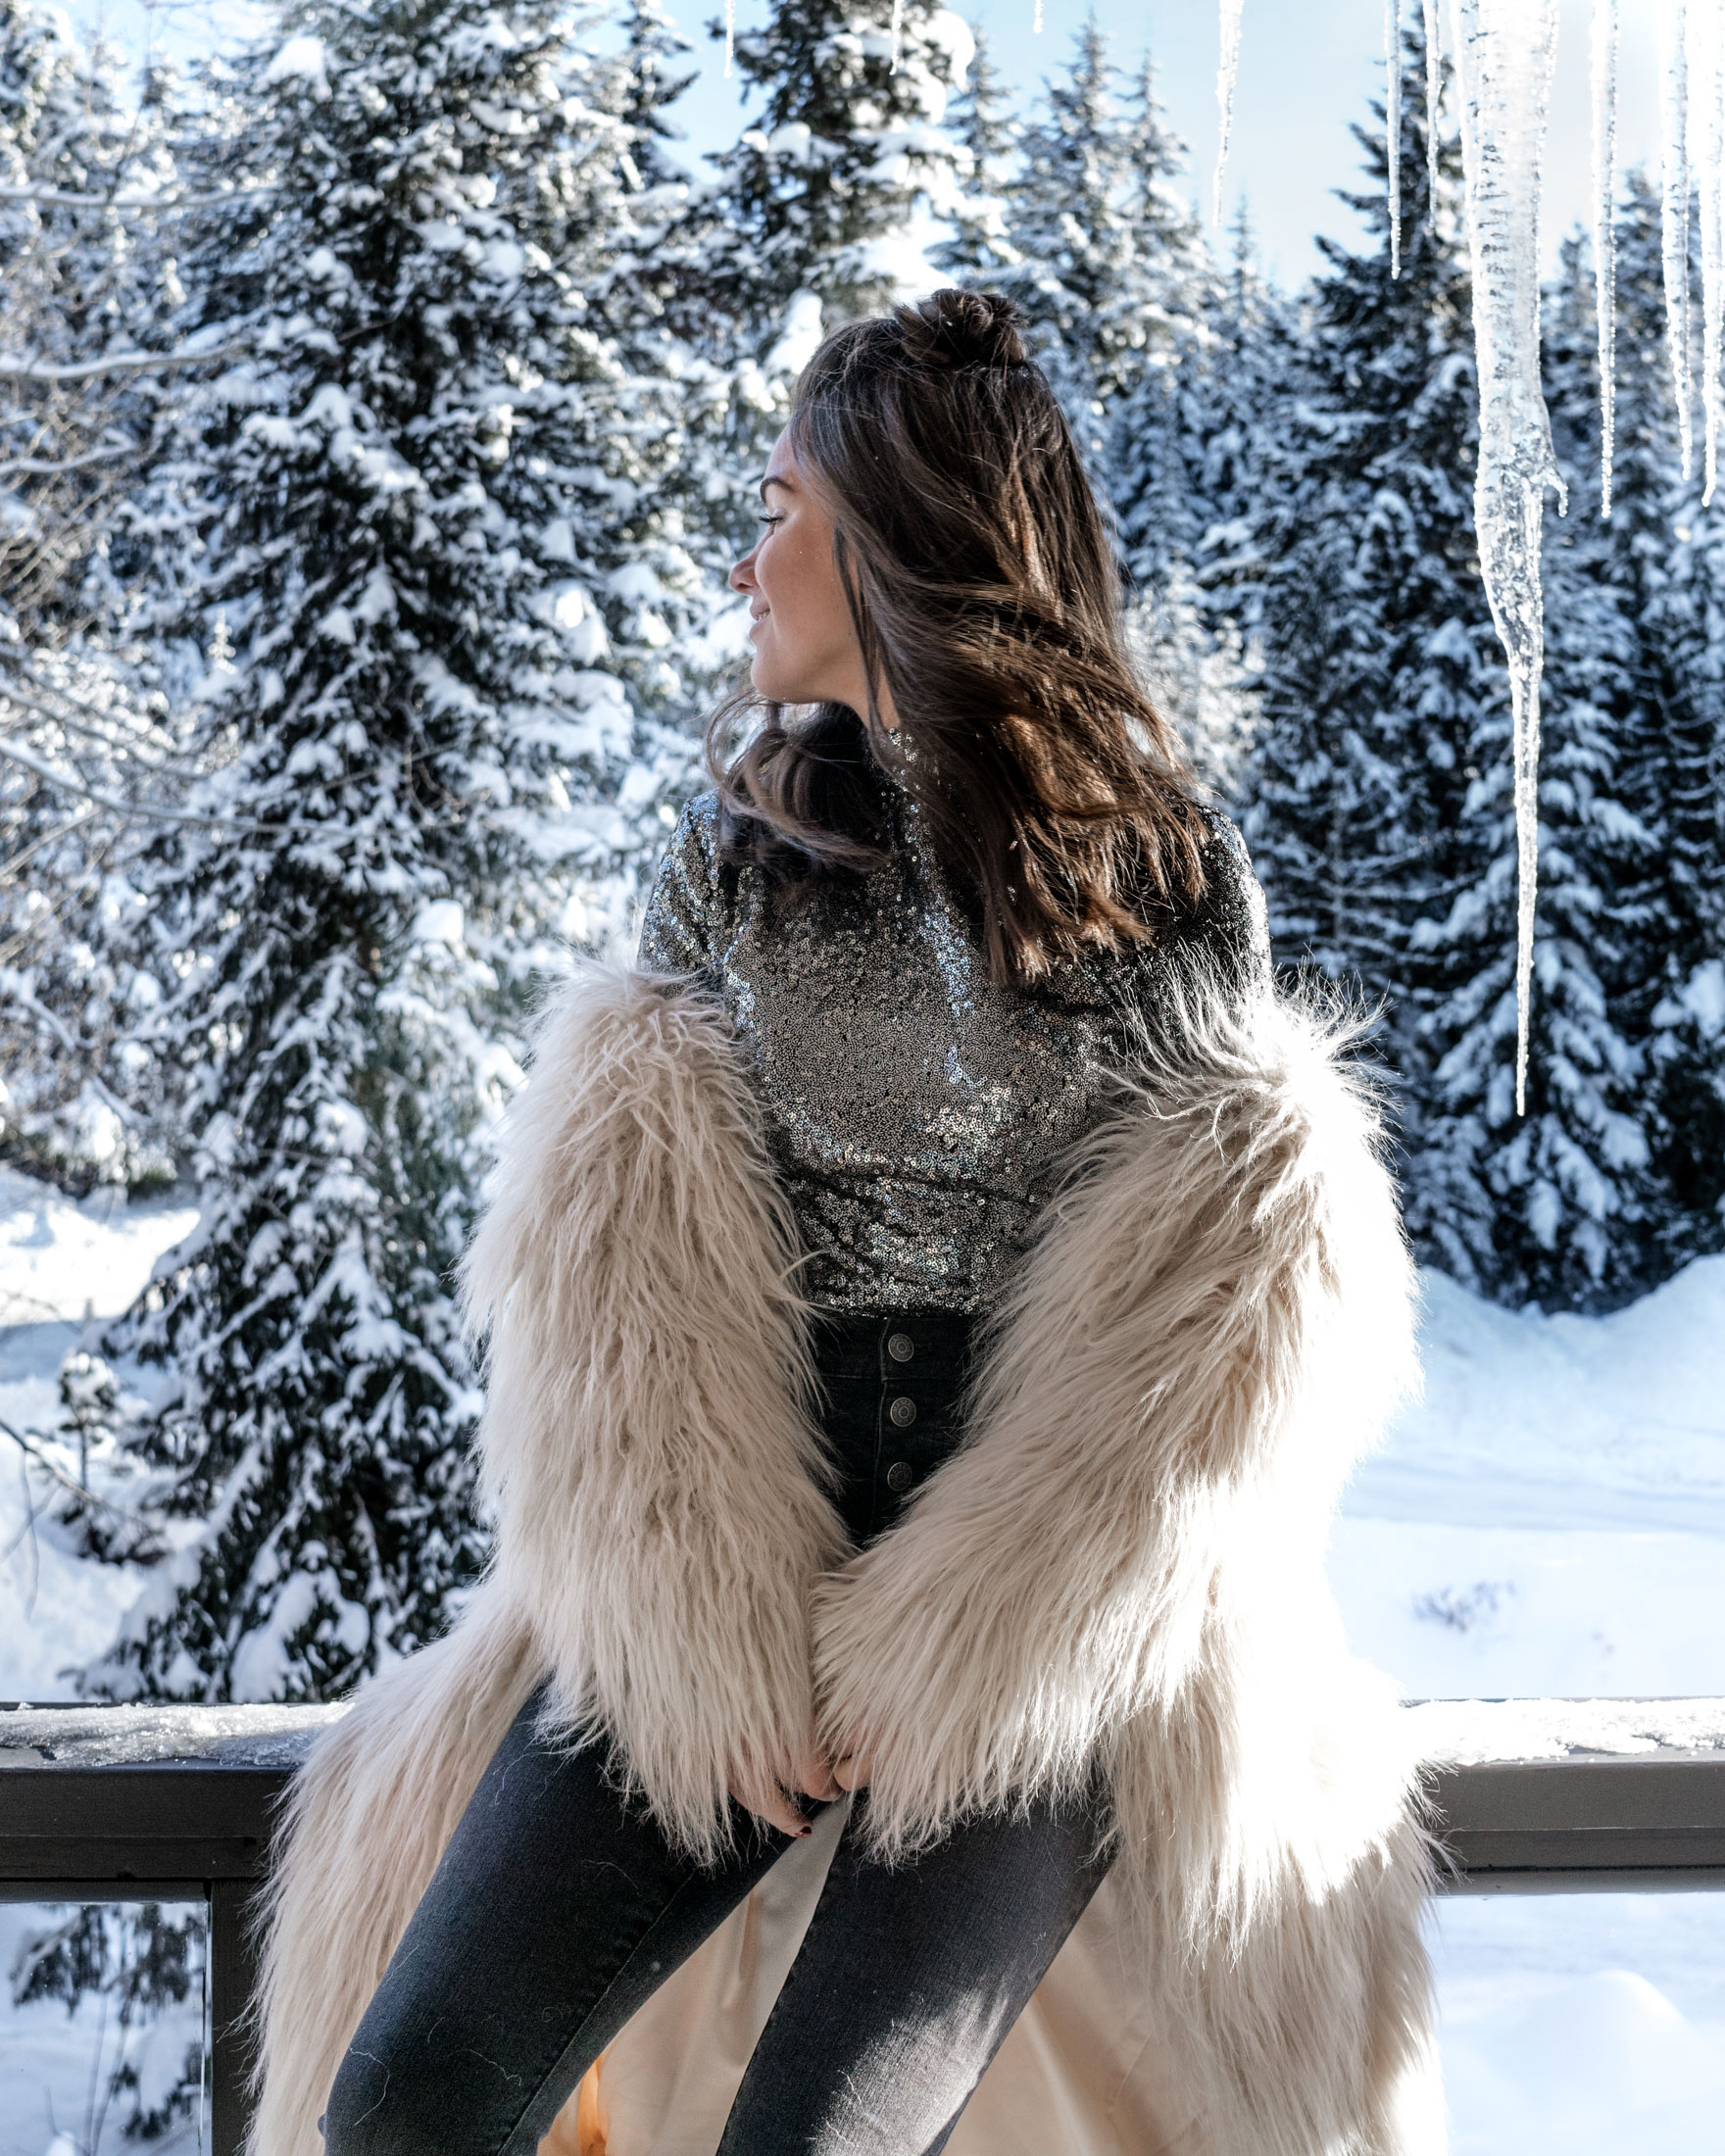 new years eve snow sequin fur outfit whistler1.jpg